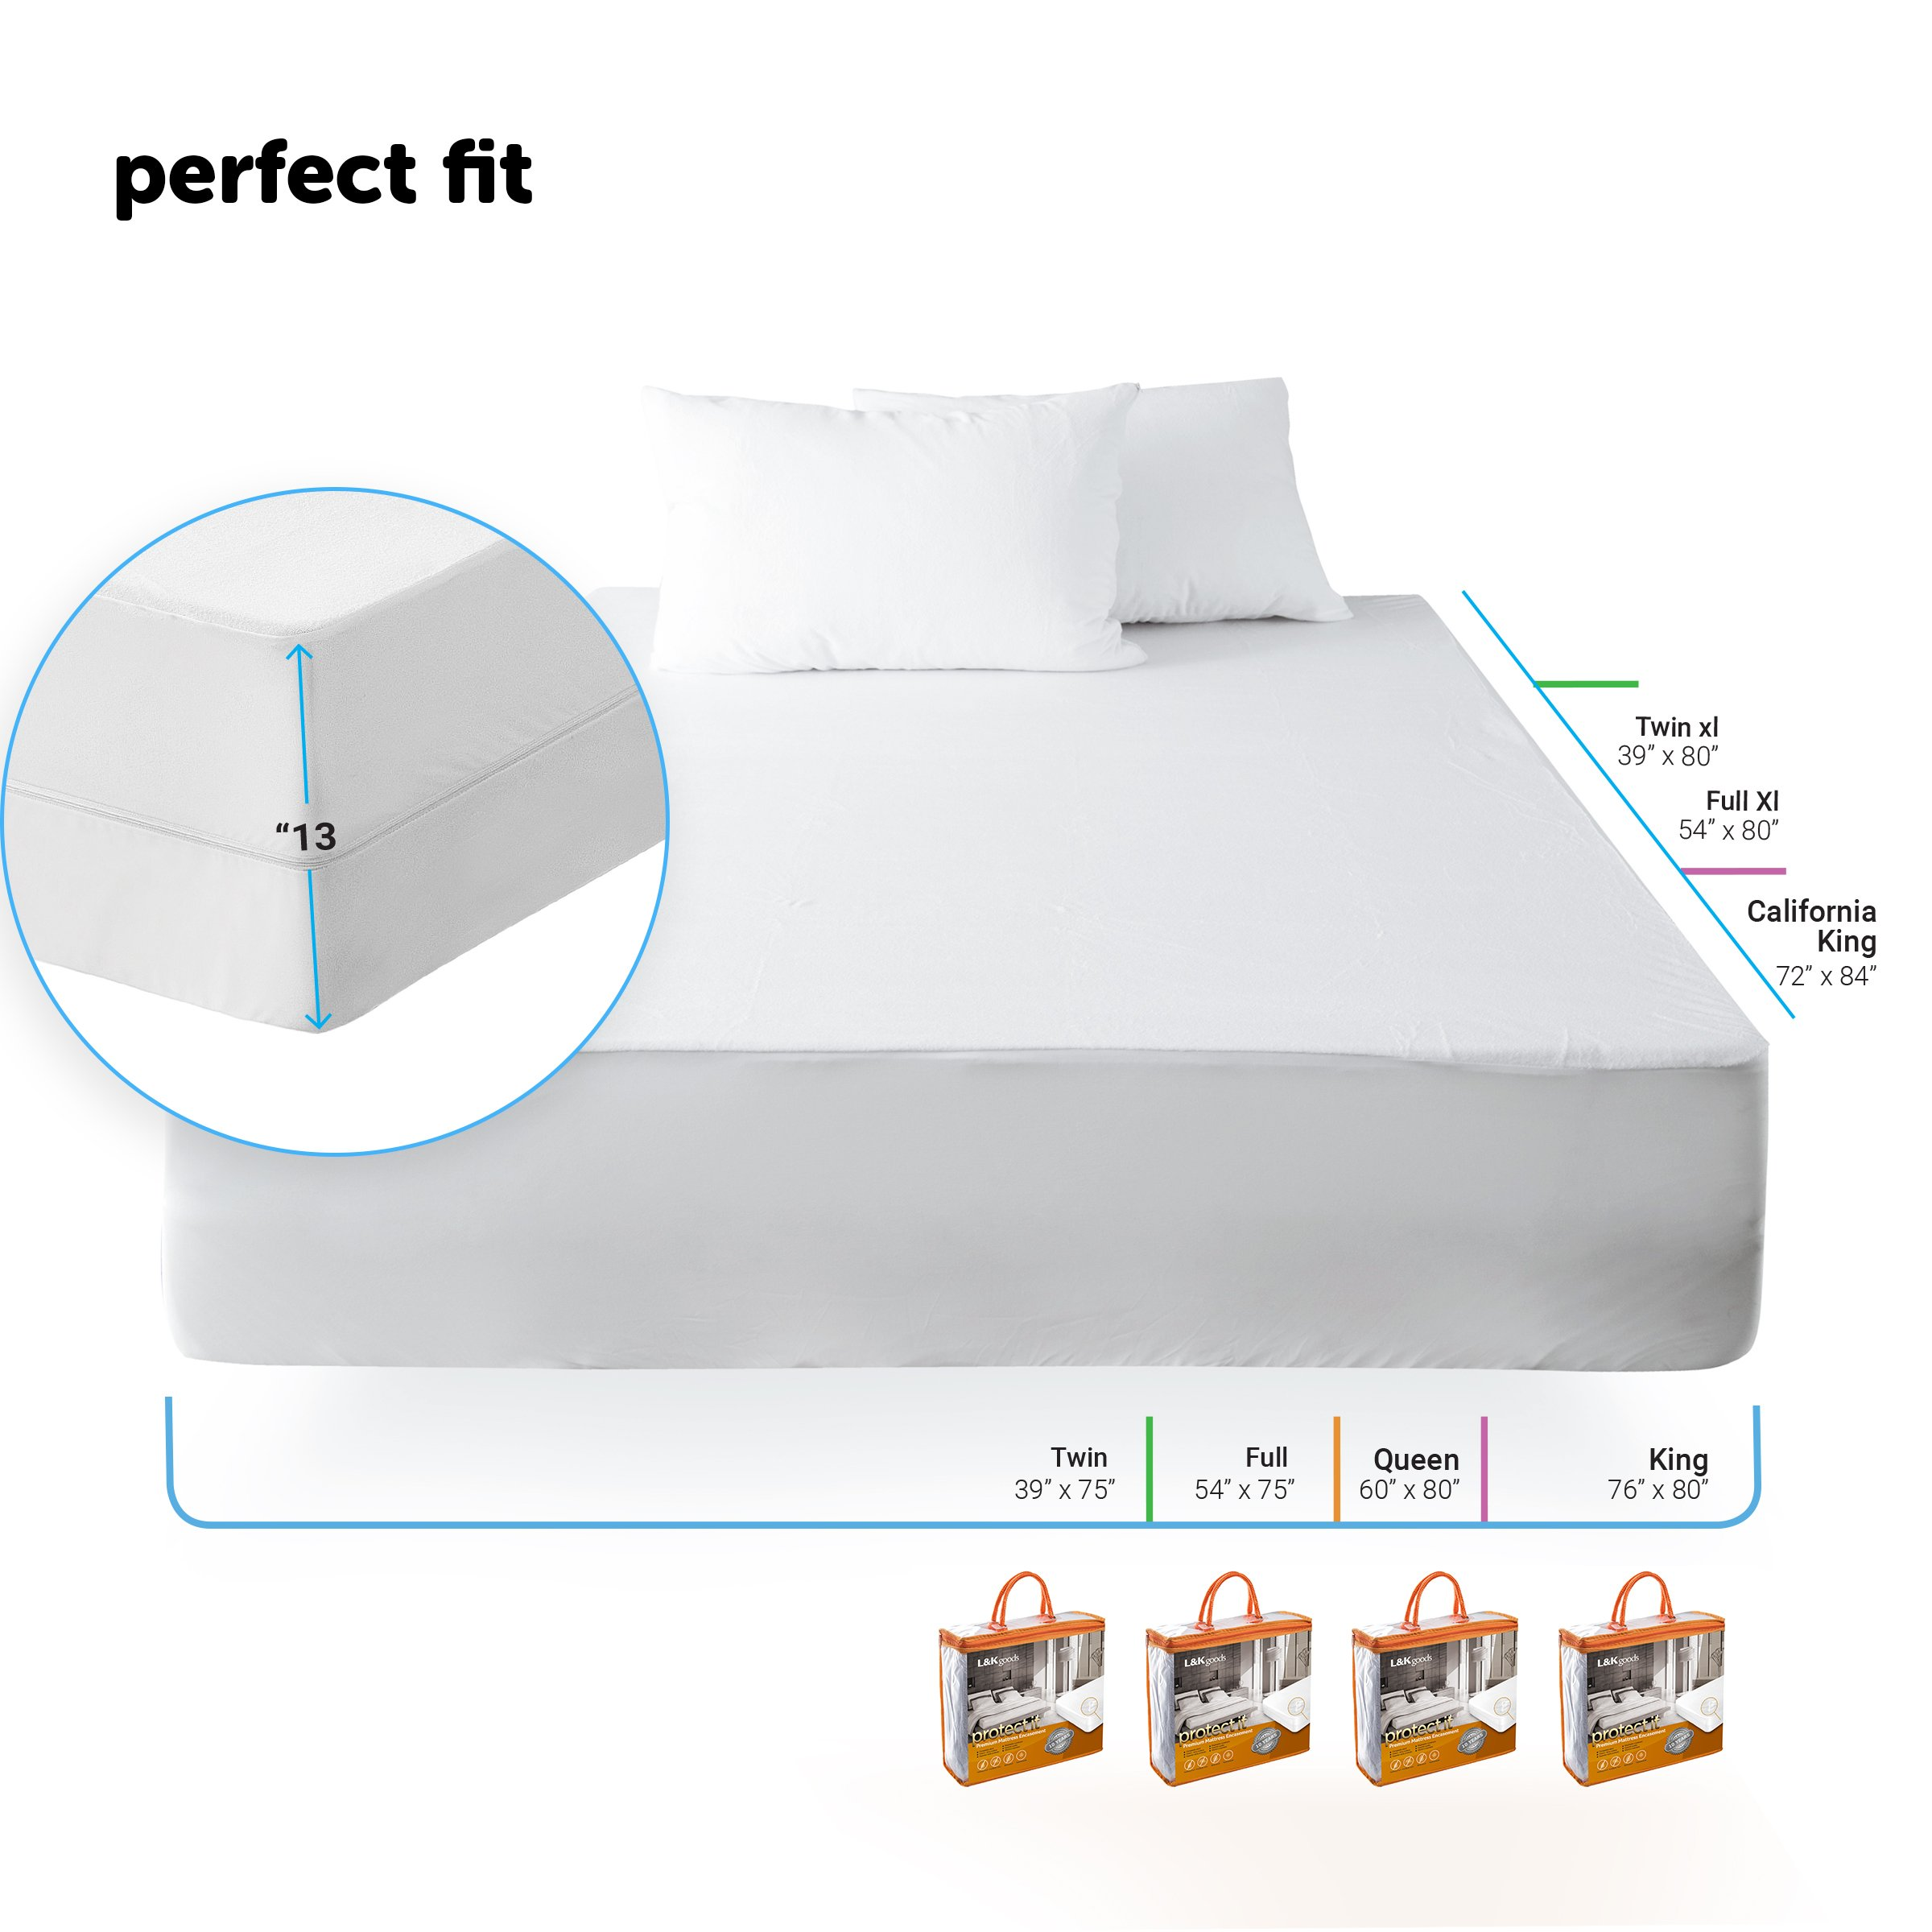 joluzzy Zippered Mattress Protector - 100% Bed Bug Proof/Waterproof Six-Sided Mattress Encasement - Cotton Terry, Breathable, Noiseless, Hypoallergenic, Vinyl-Free, Twin-XL Size by joluzzy (Image #5)